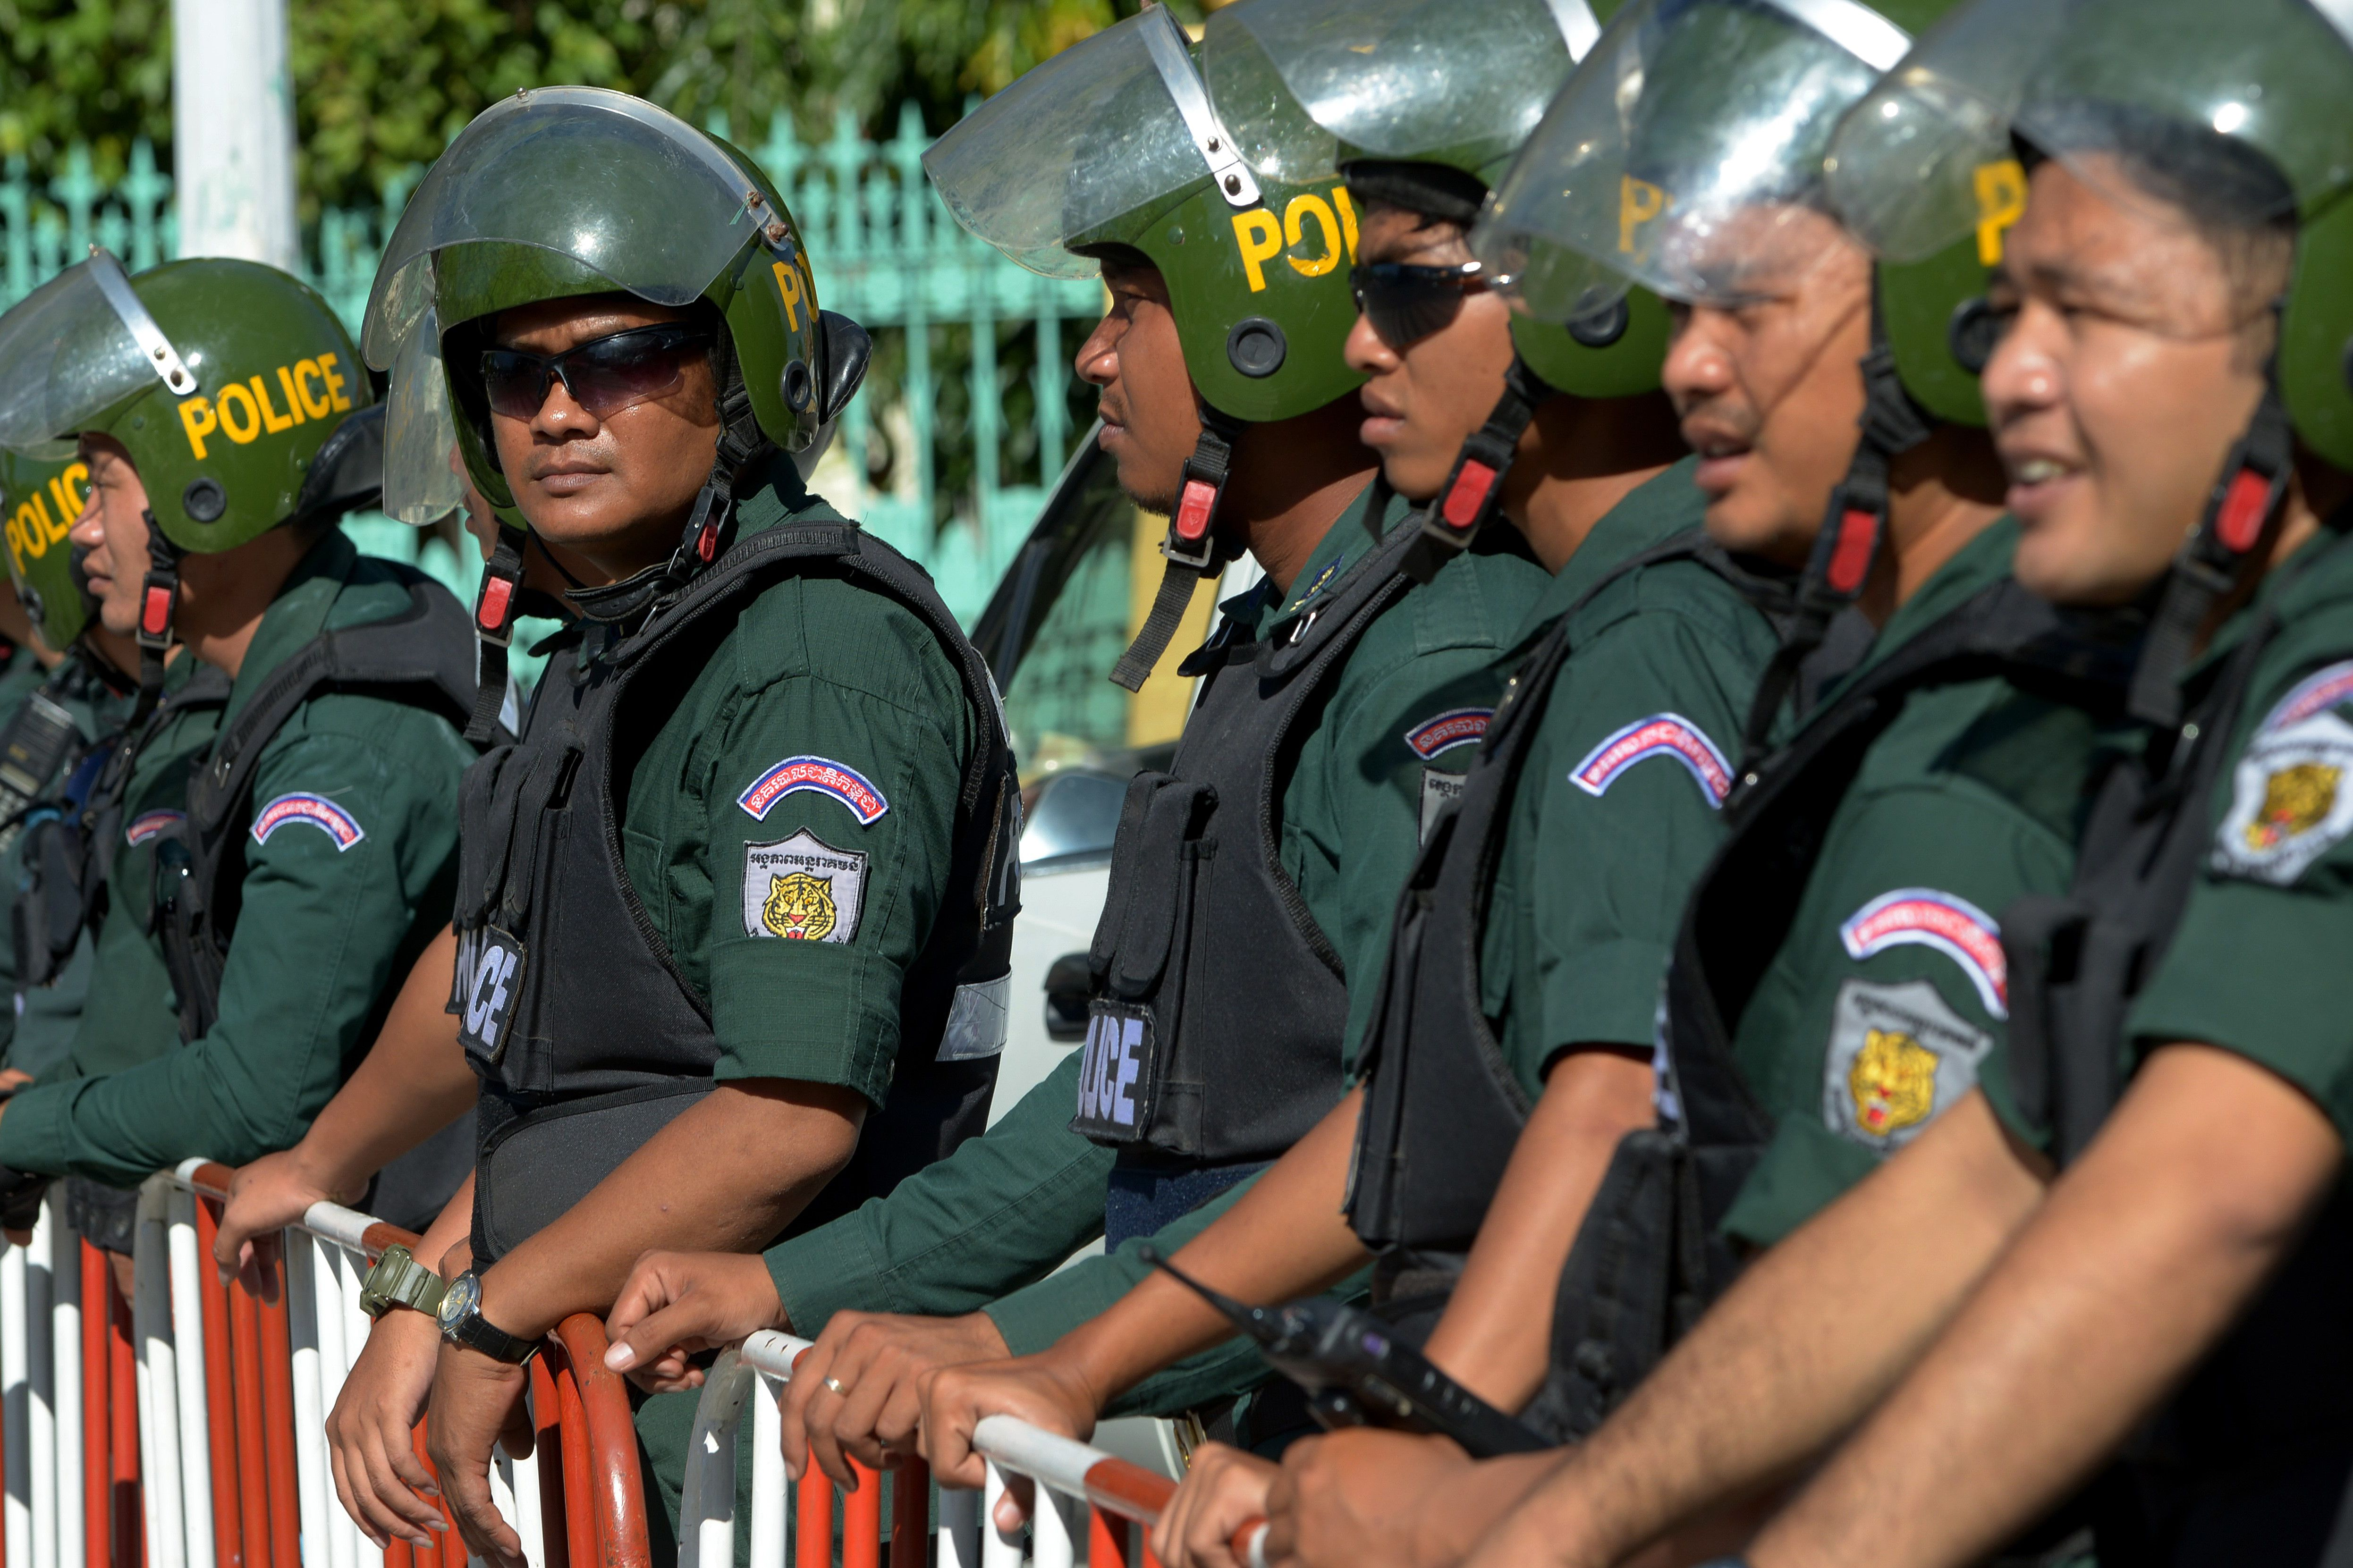 Cambodian police block a street during a rally of lawmakers and supporters of the Cambodia National Rescue Party (CNRP) in Phnom Penh on Sept. 26, 2017.